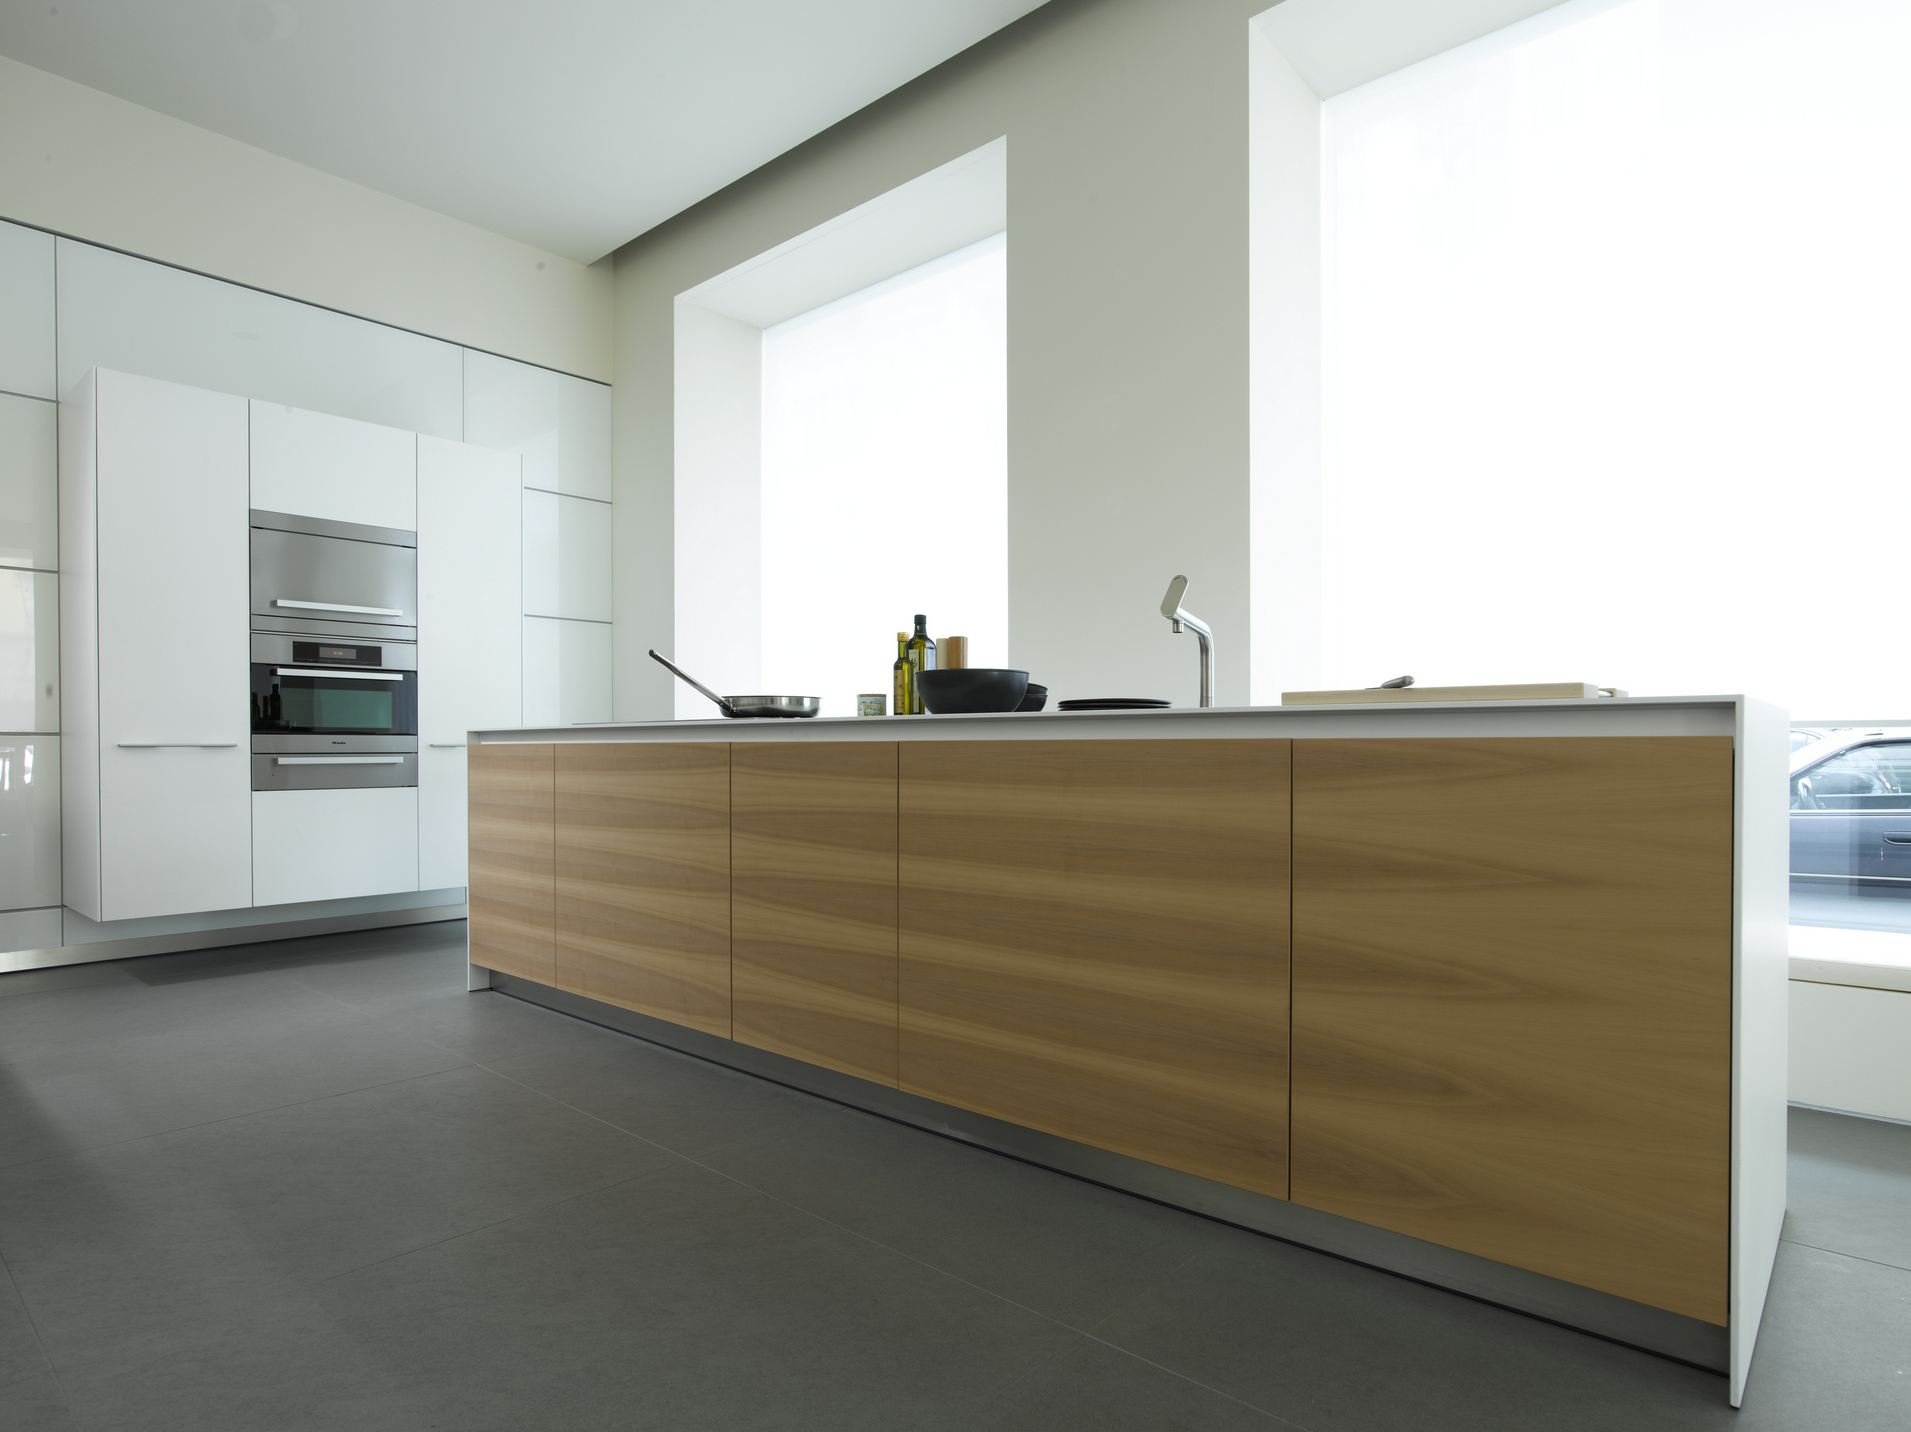 b3 wood veneer kitchen by bulthaup. Black Bedroom Furniture Sets. Home Design Ideas